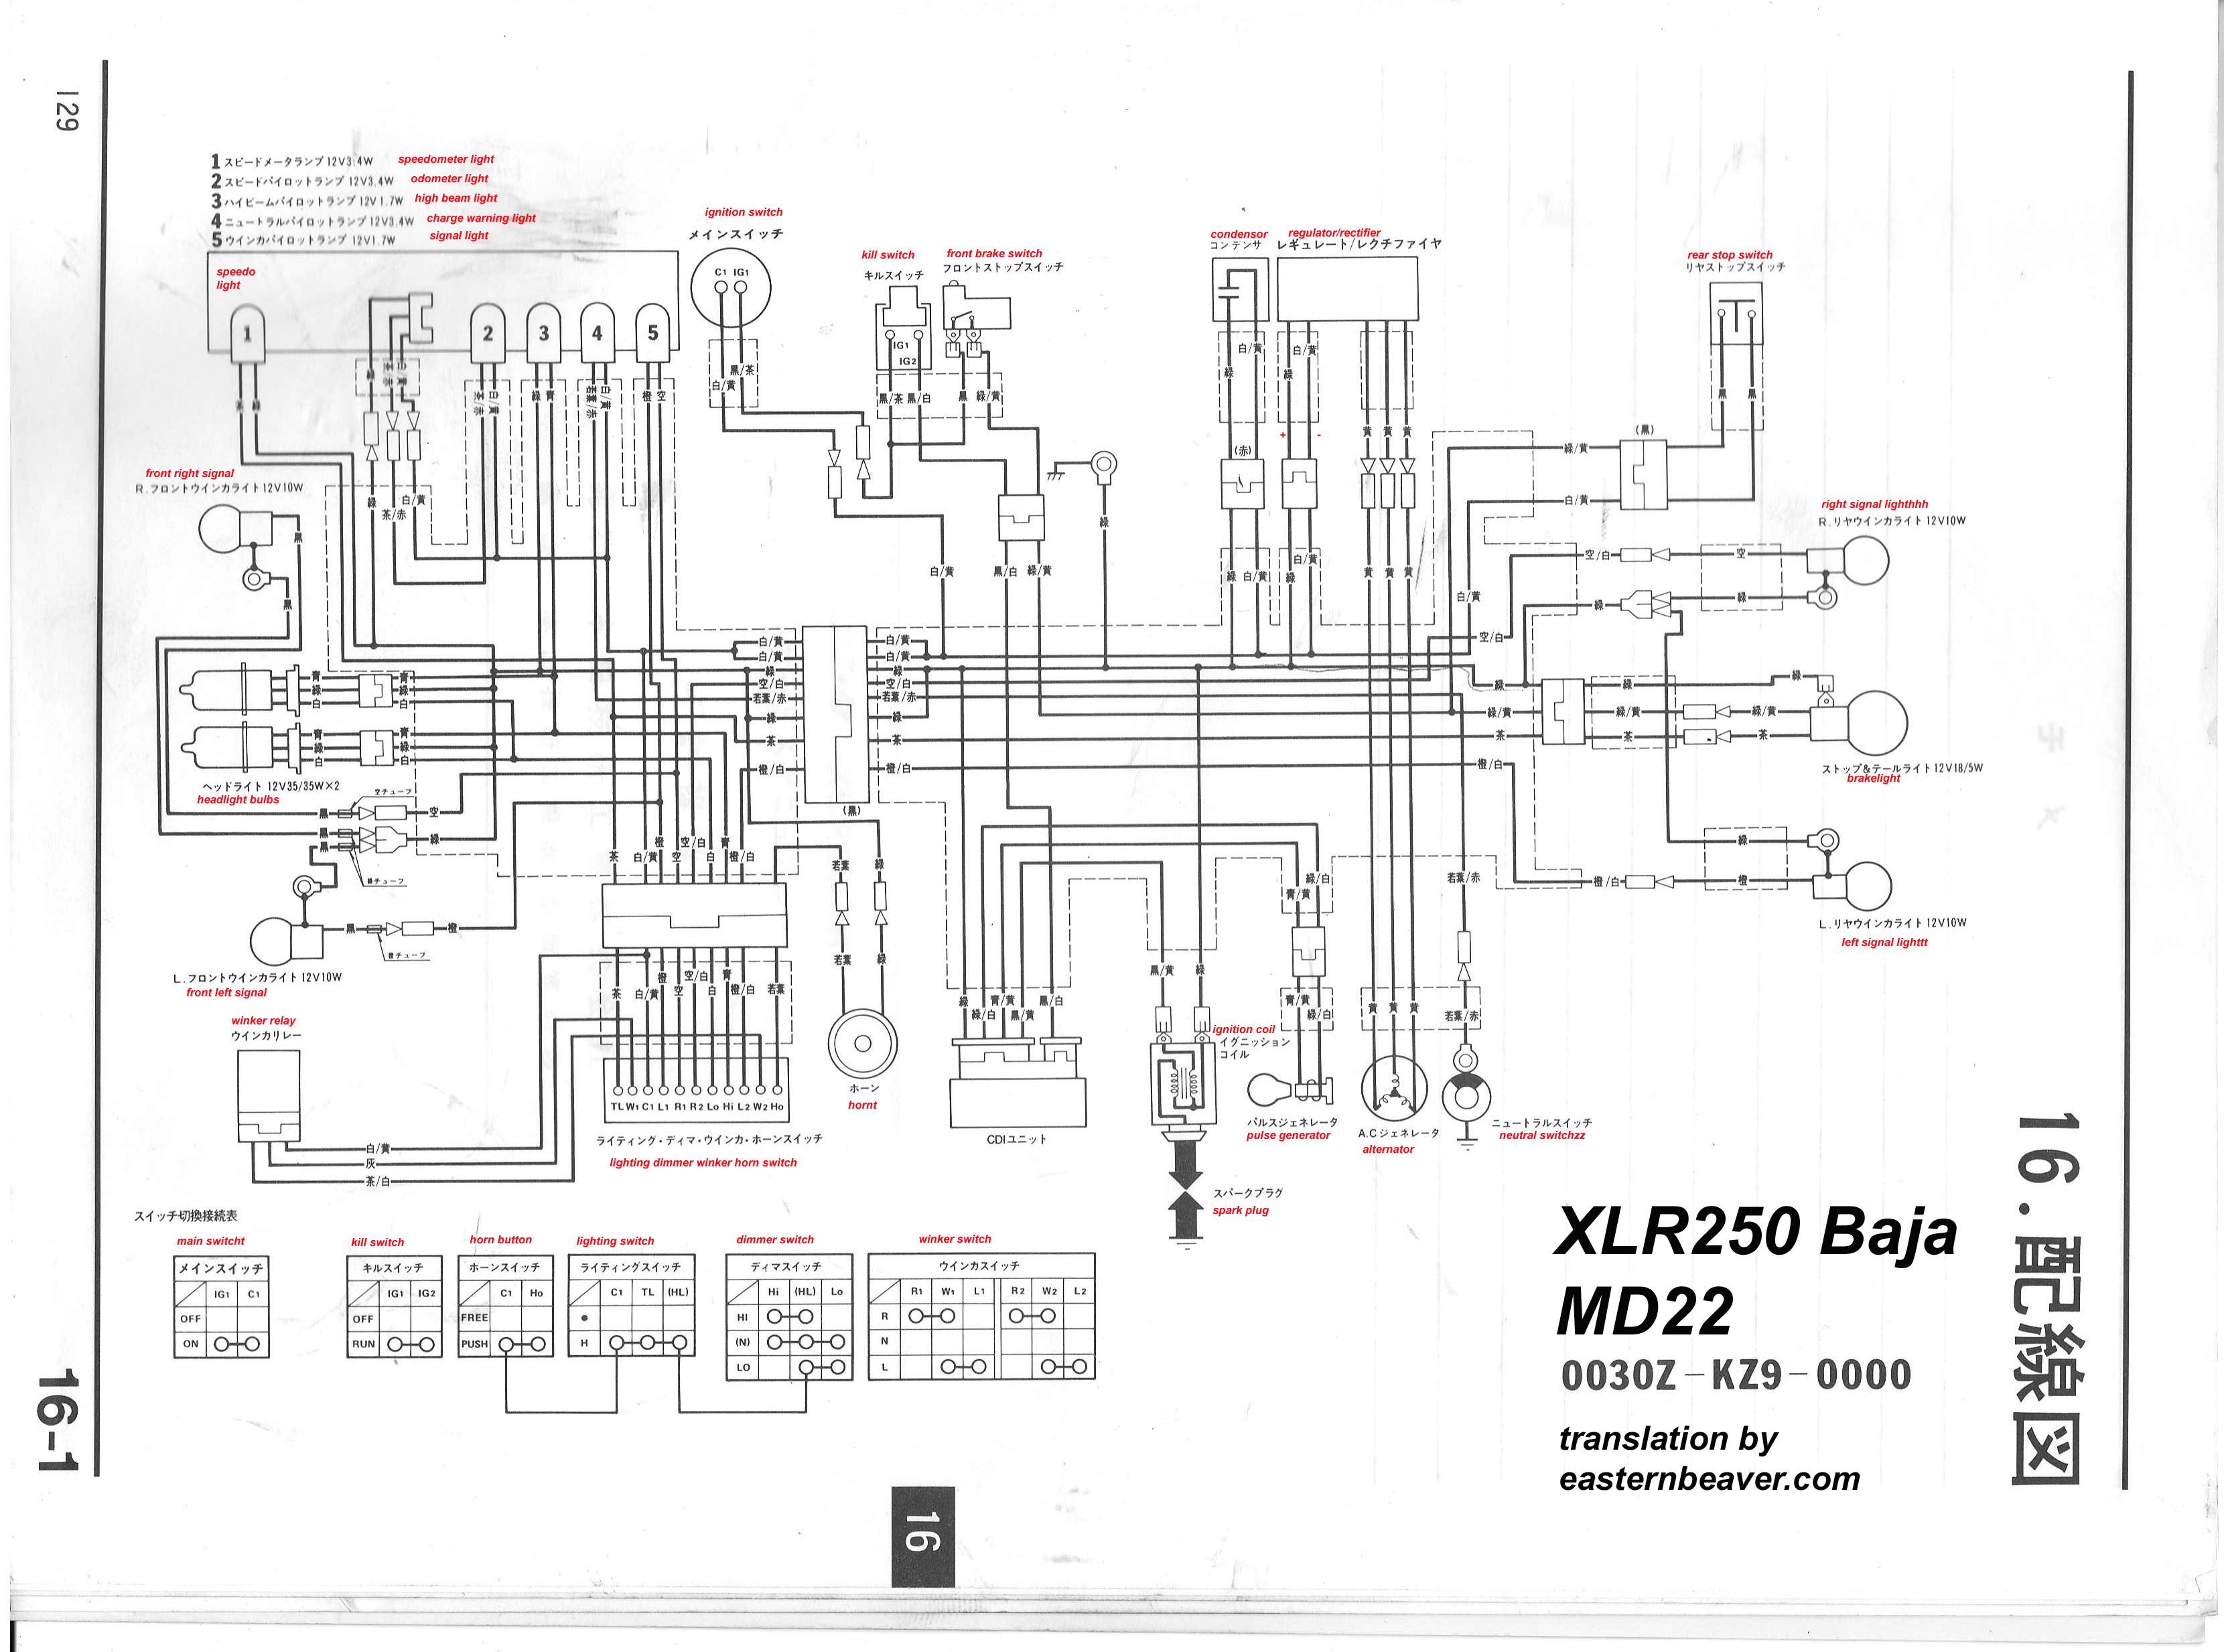 Kdx400 Wiring Diagram Kdx 220 Wiring Diagram Repair